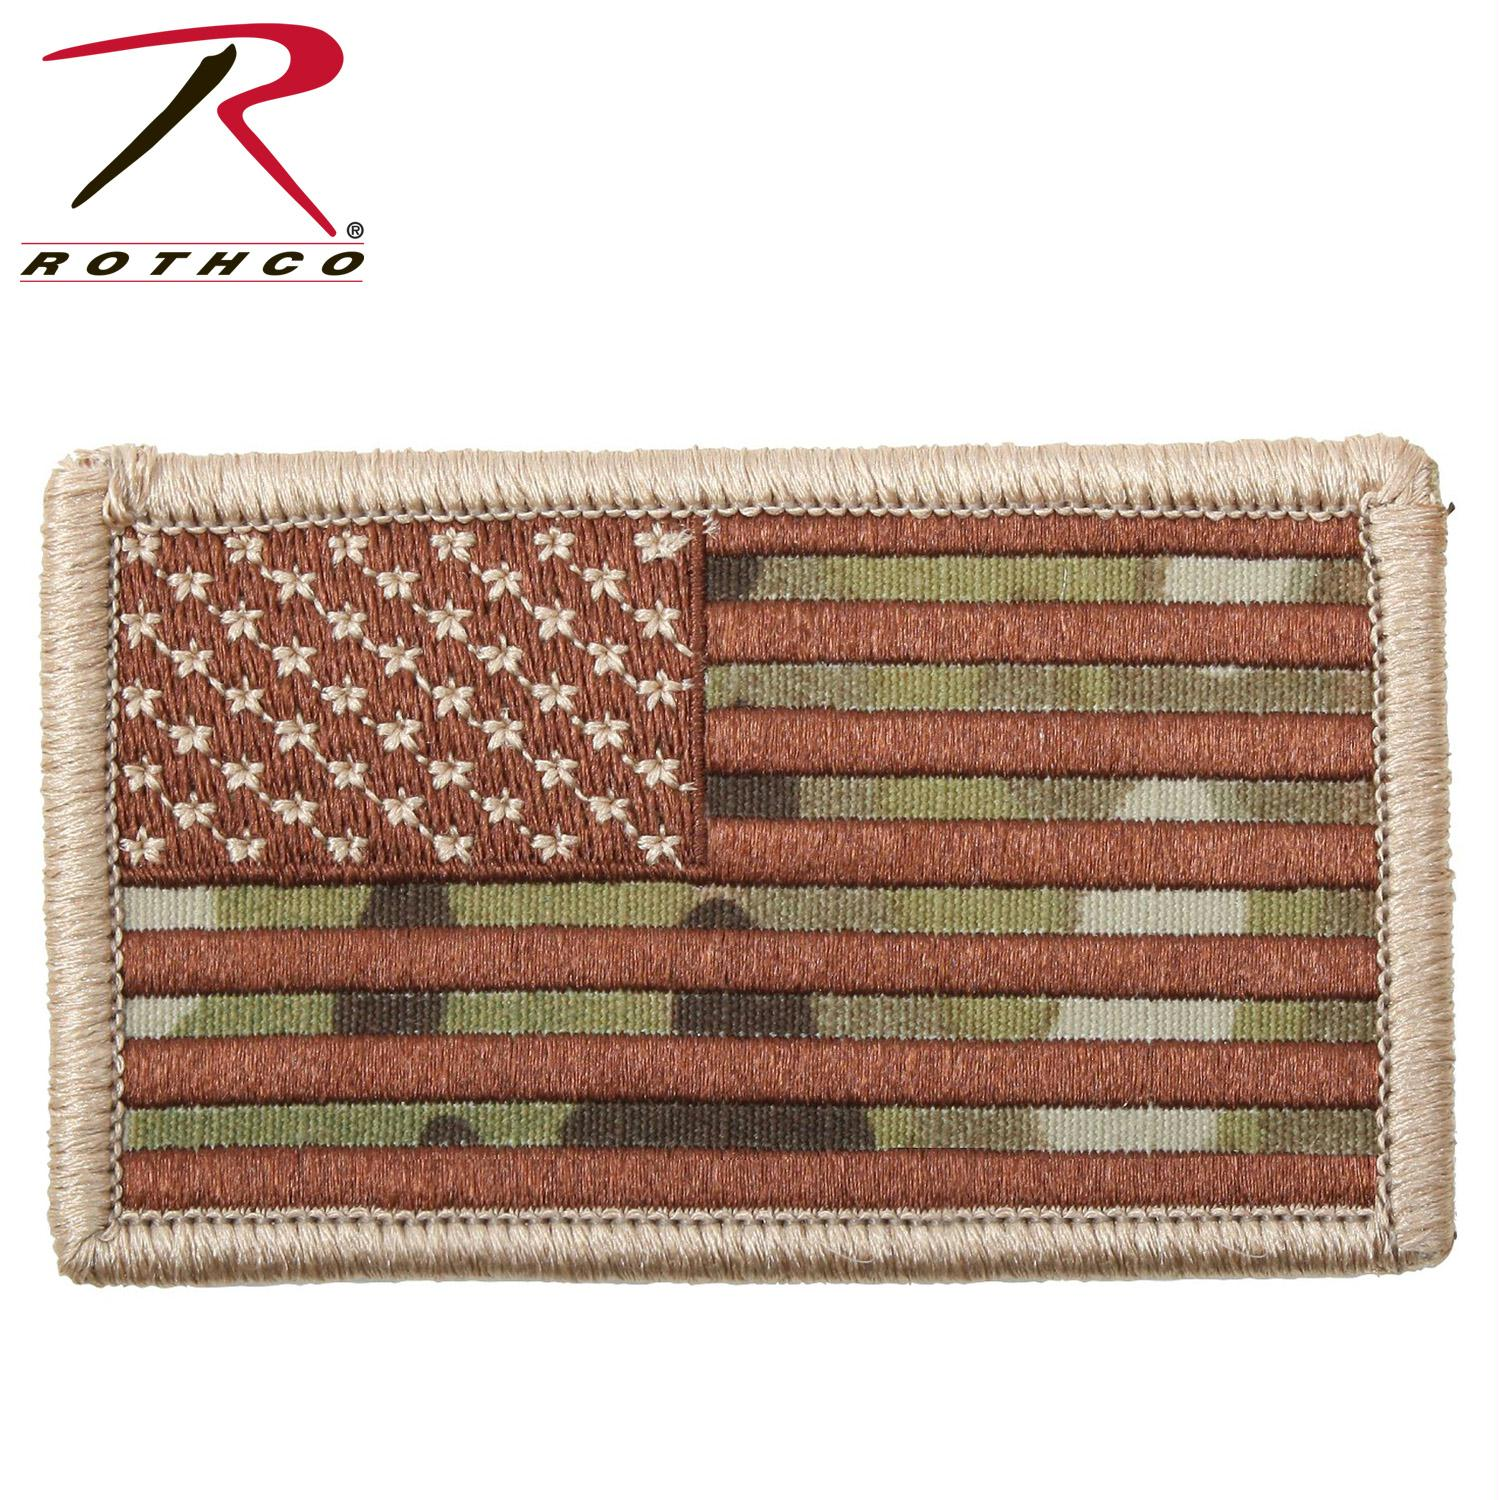 Rothco American Flag Patch - MultiCam / Normal / Bulk Packaging